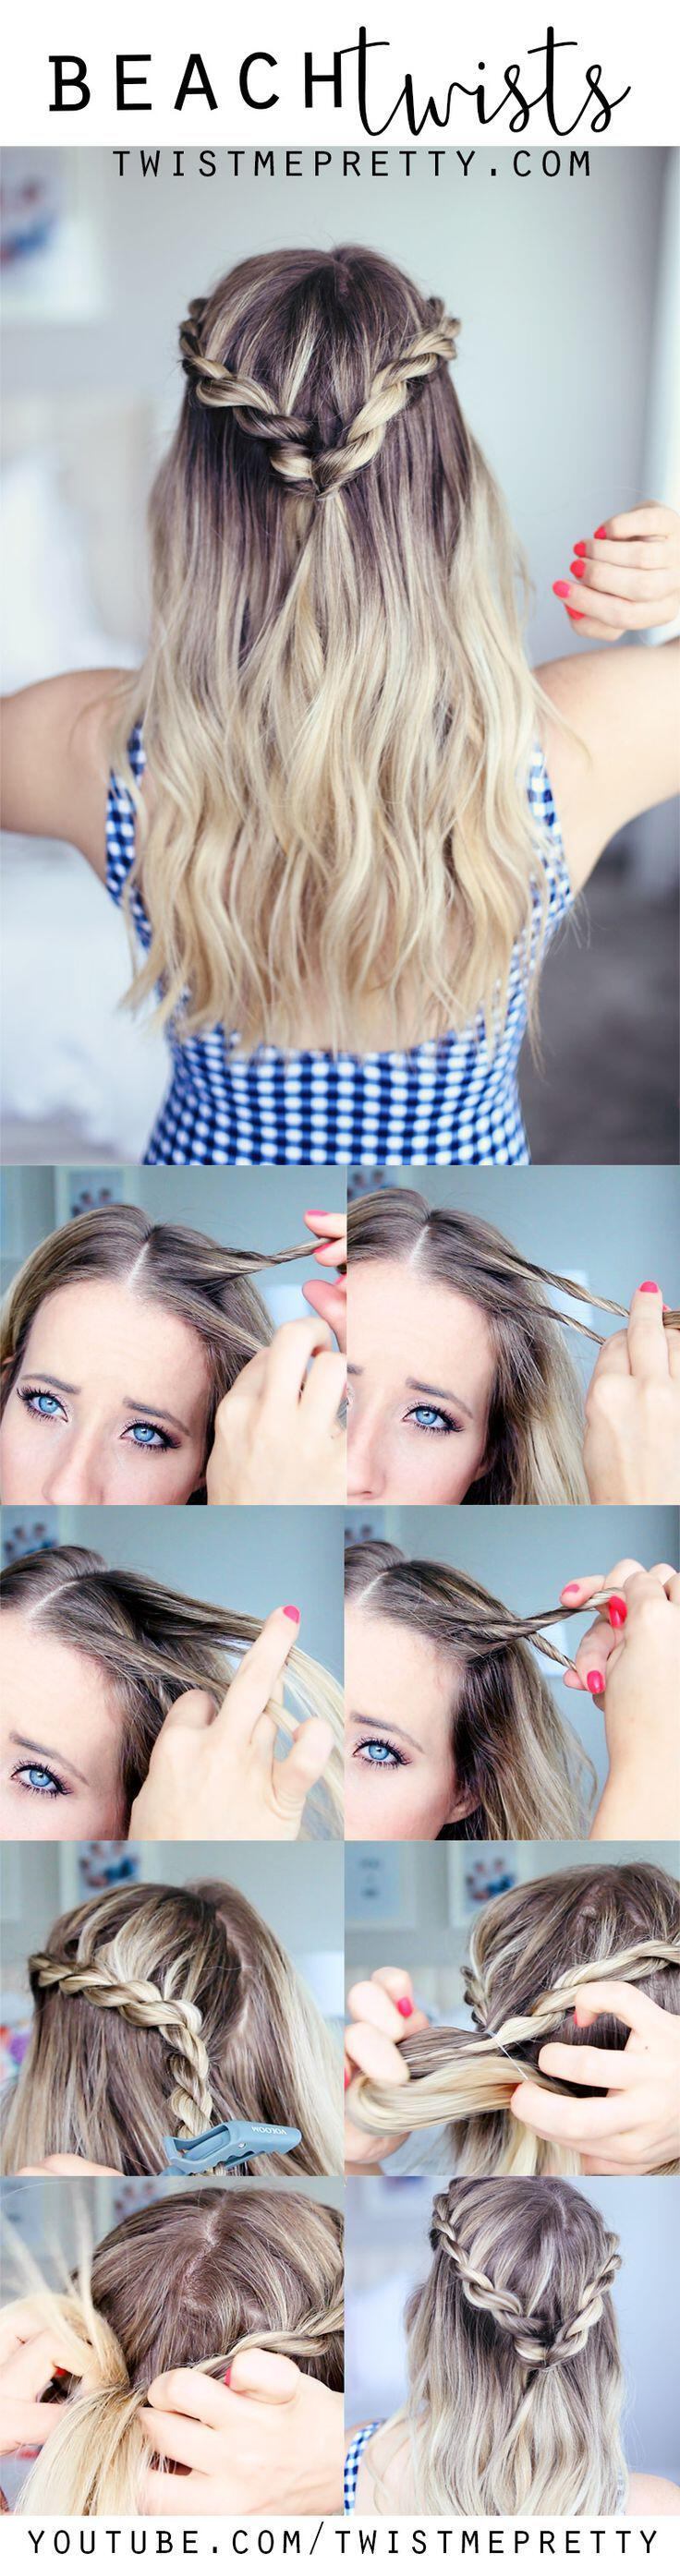 14 beautiful spring hairstyles for every length 1 - 14 beautiful spring hairstyles for every length